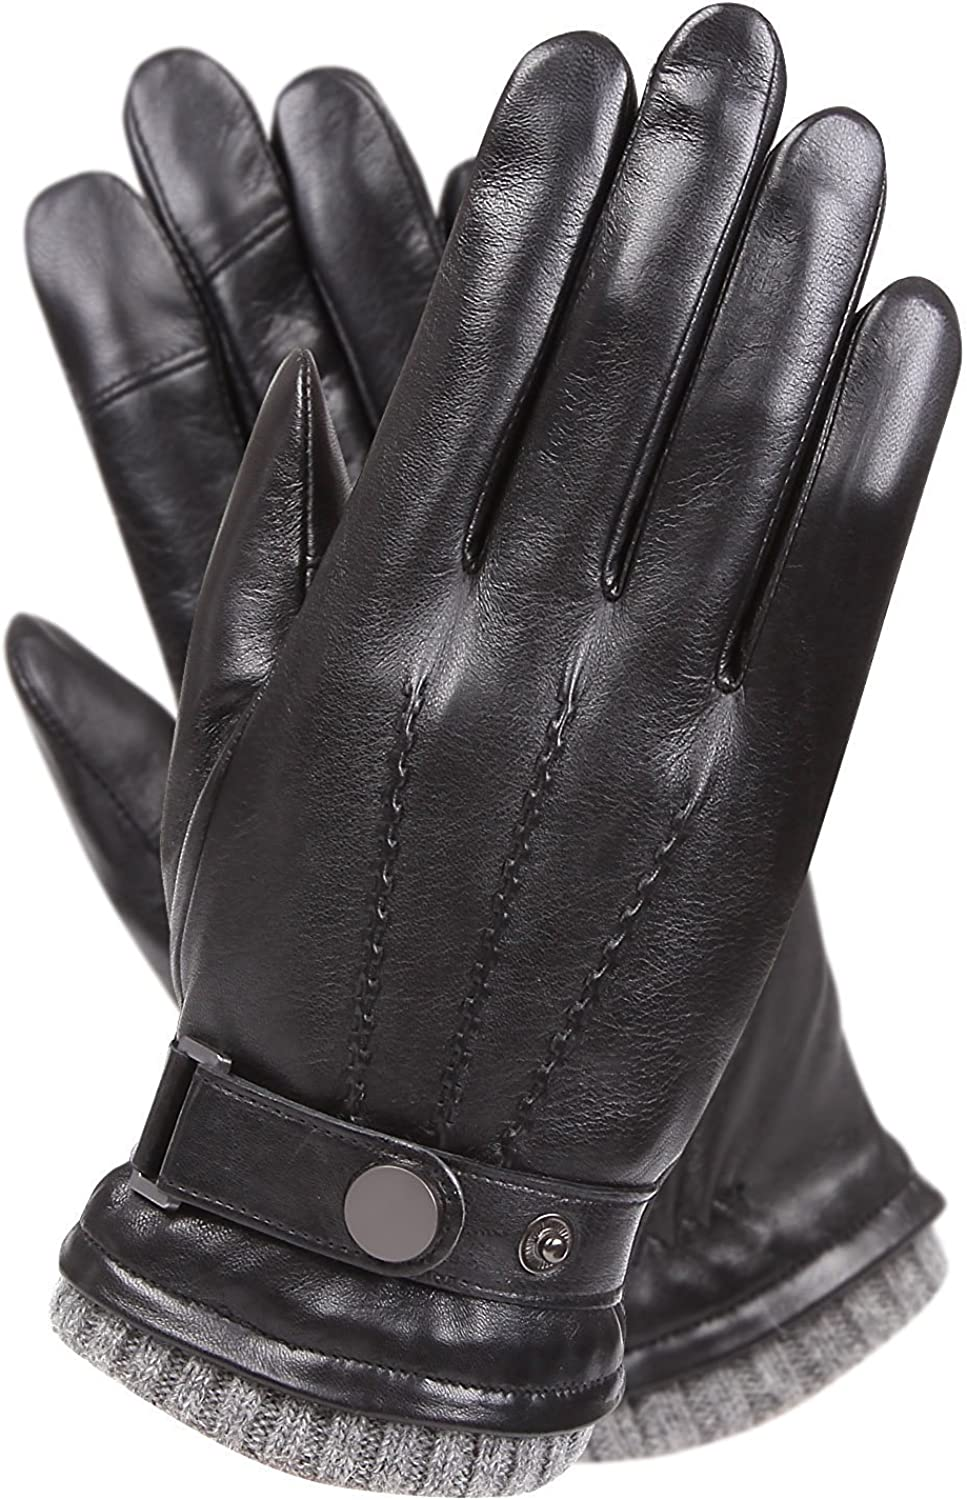 Mens Winter Cold Weather Warm Leather Driving Gloves for Men Wool/Cashmere Blend Cuff